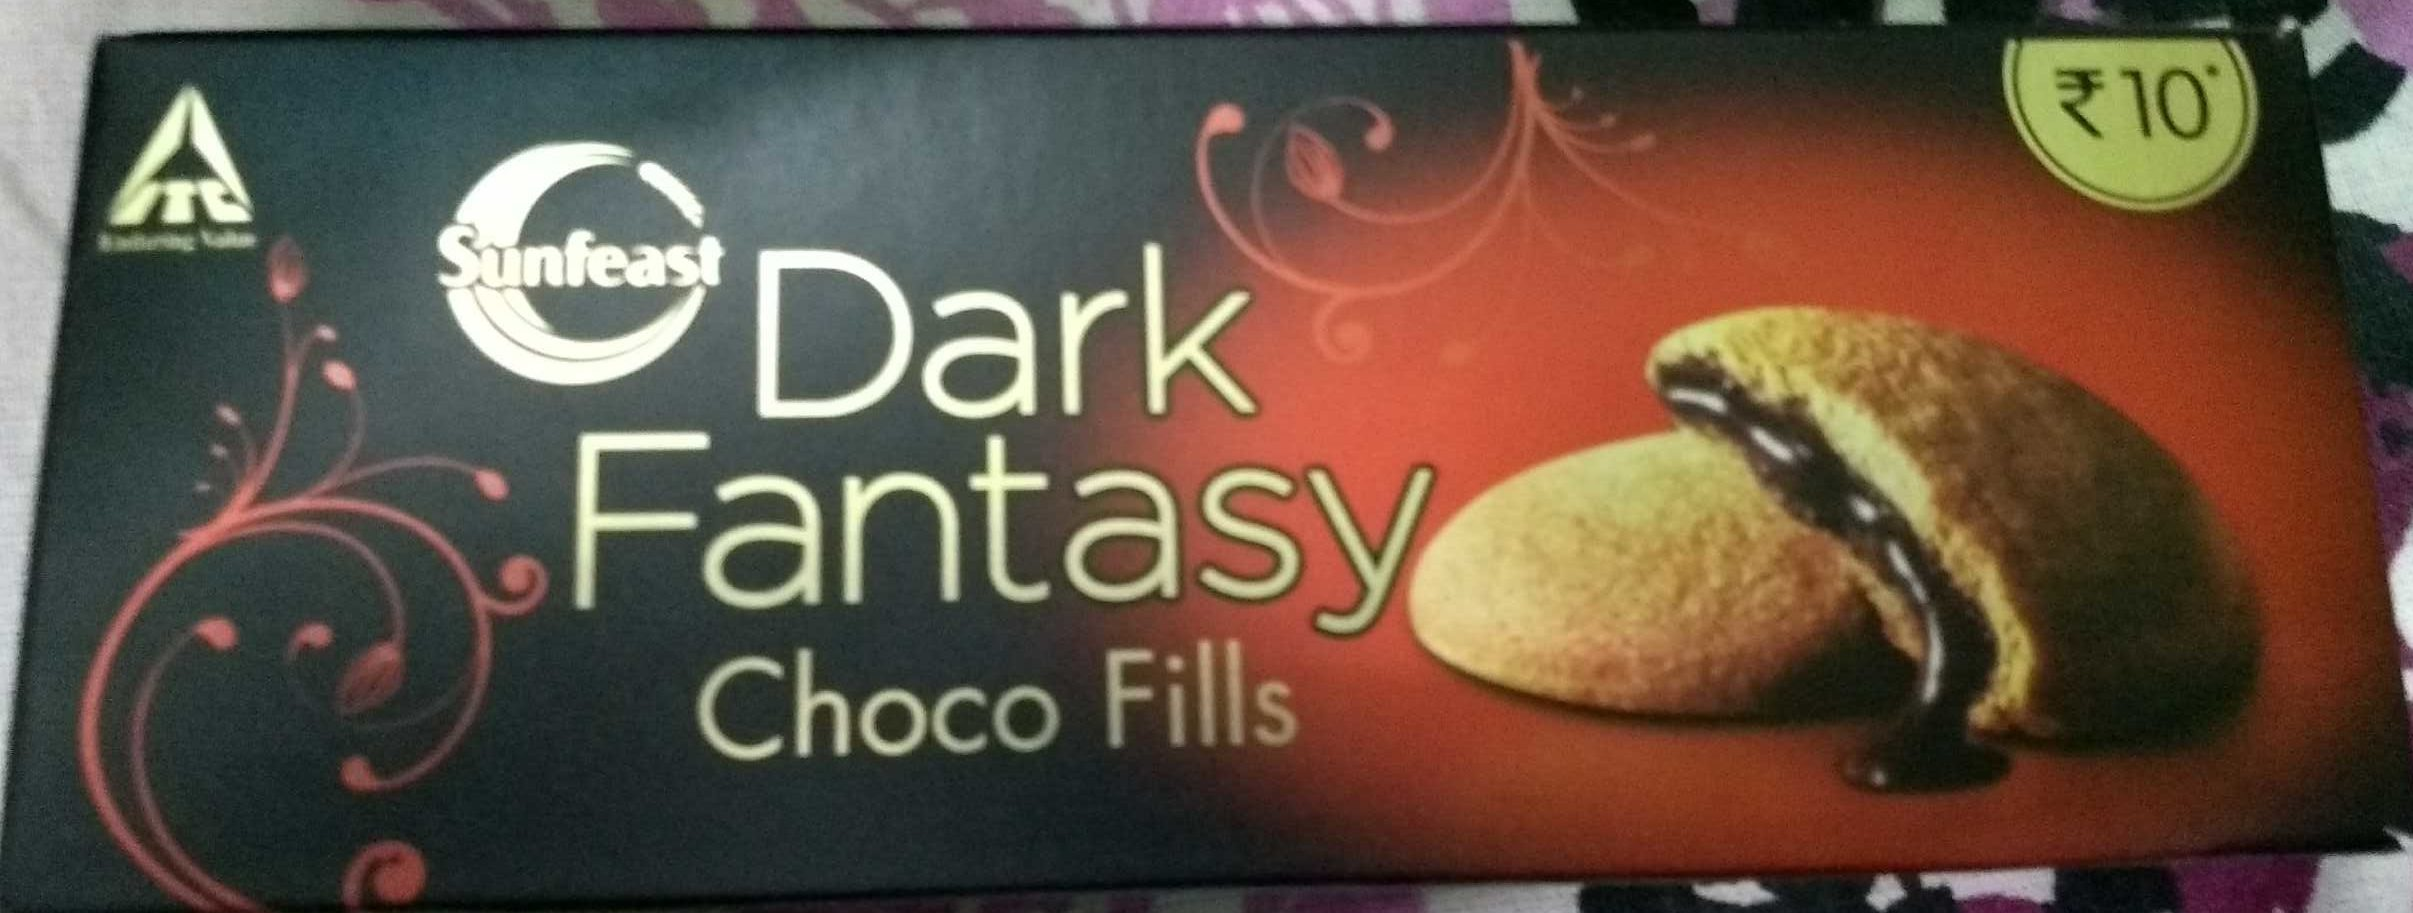 Dark Fantasy Choco Fills - Product - en